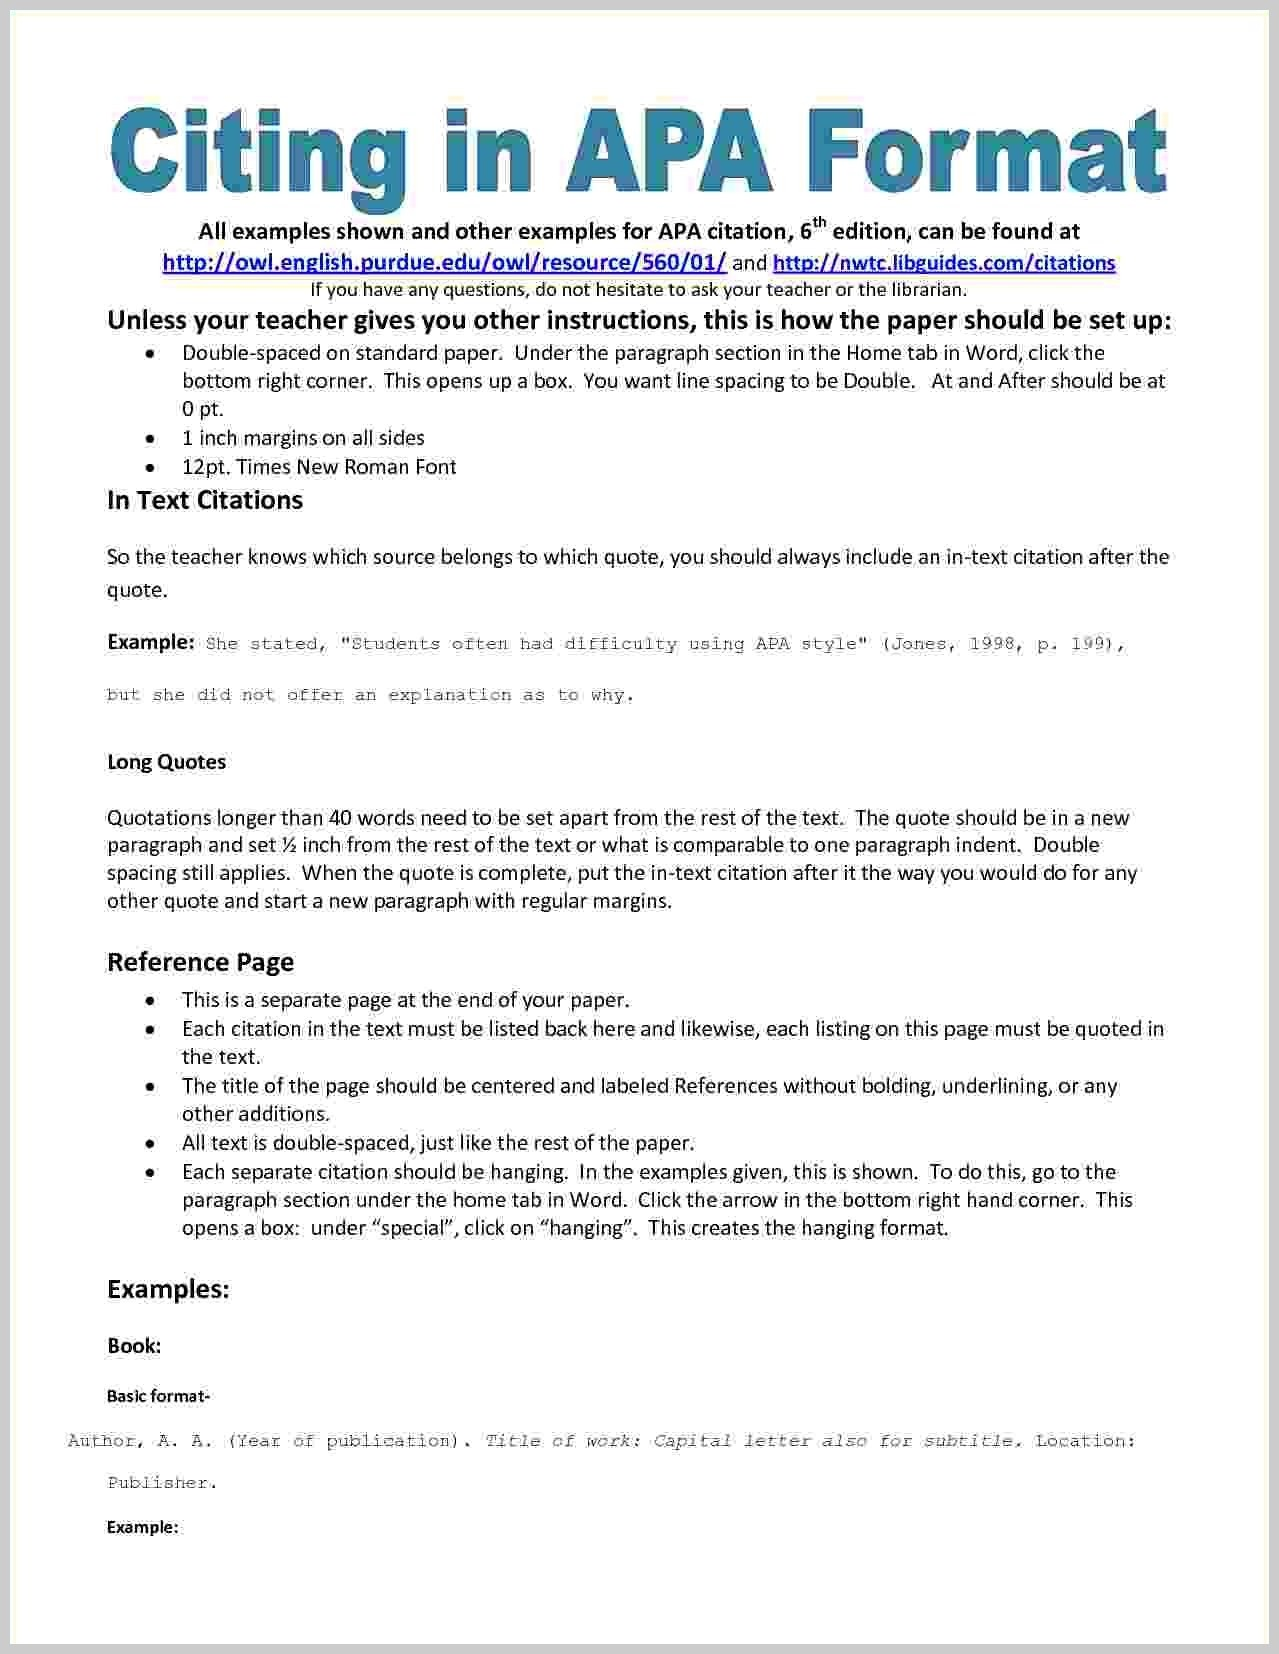 003 Research Paper Apa Style Reference In Text Citation Mla Examples Toreto Co Line Database Security Related Impressive Papers Pdf Full